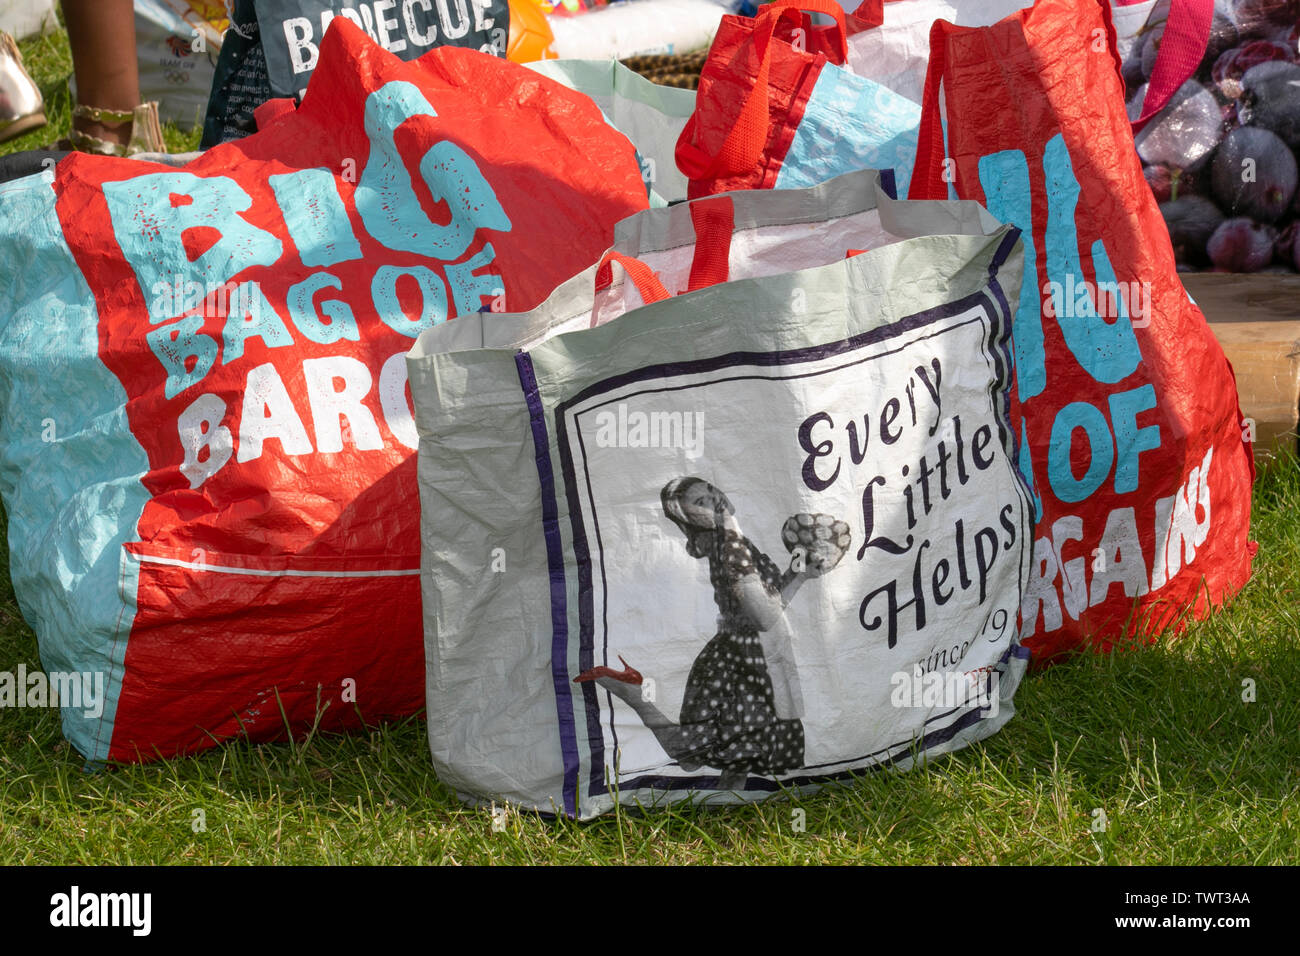 Printed Bags Stock Photos & Printed Bags Stock Images - Alamy